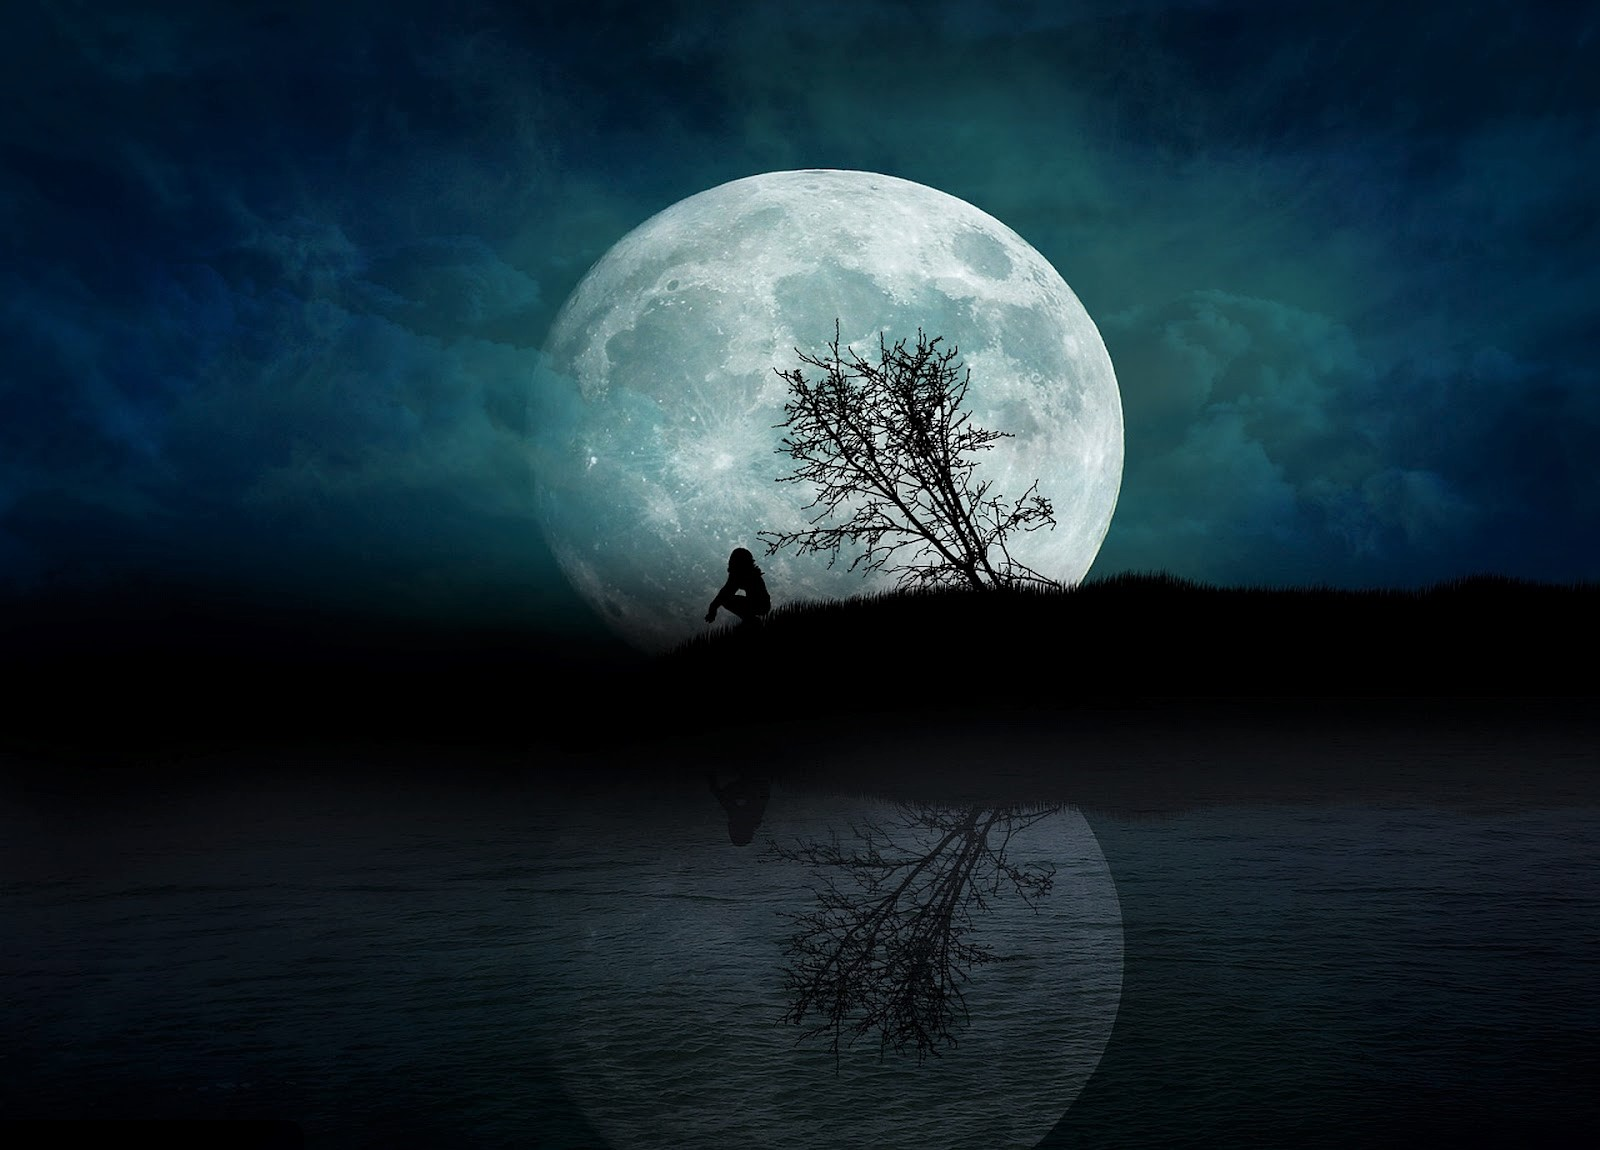 Alone Girl Lonely Moon Night Silhouette Tree 1600x1150